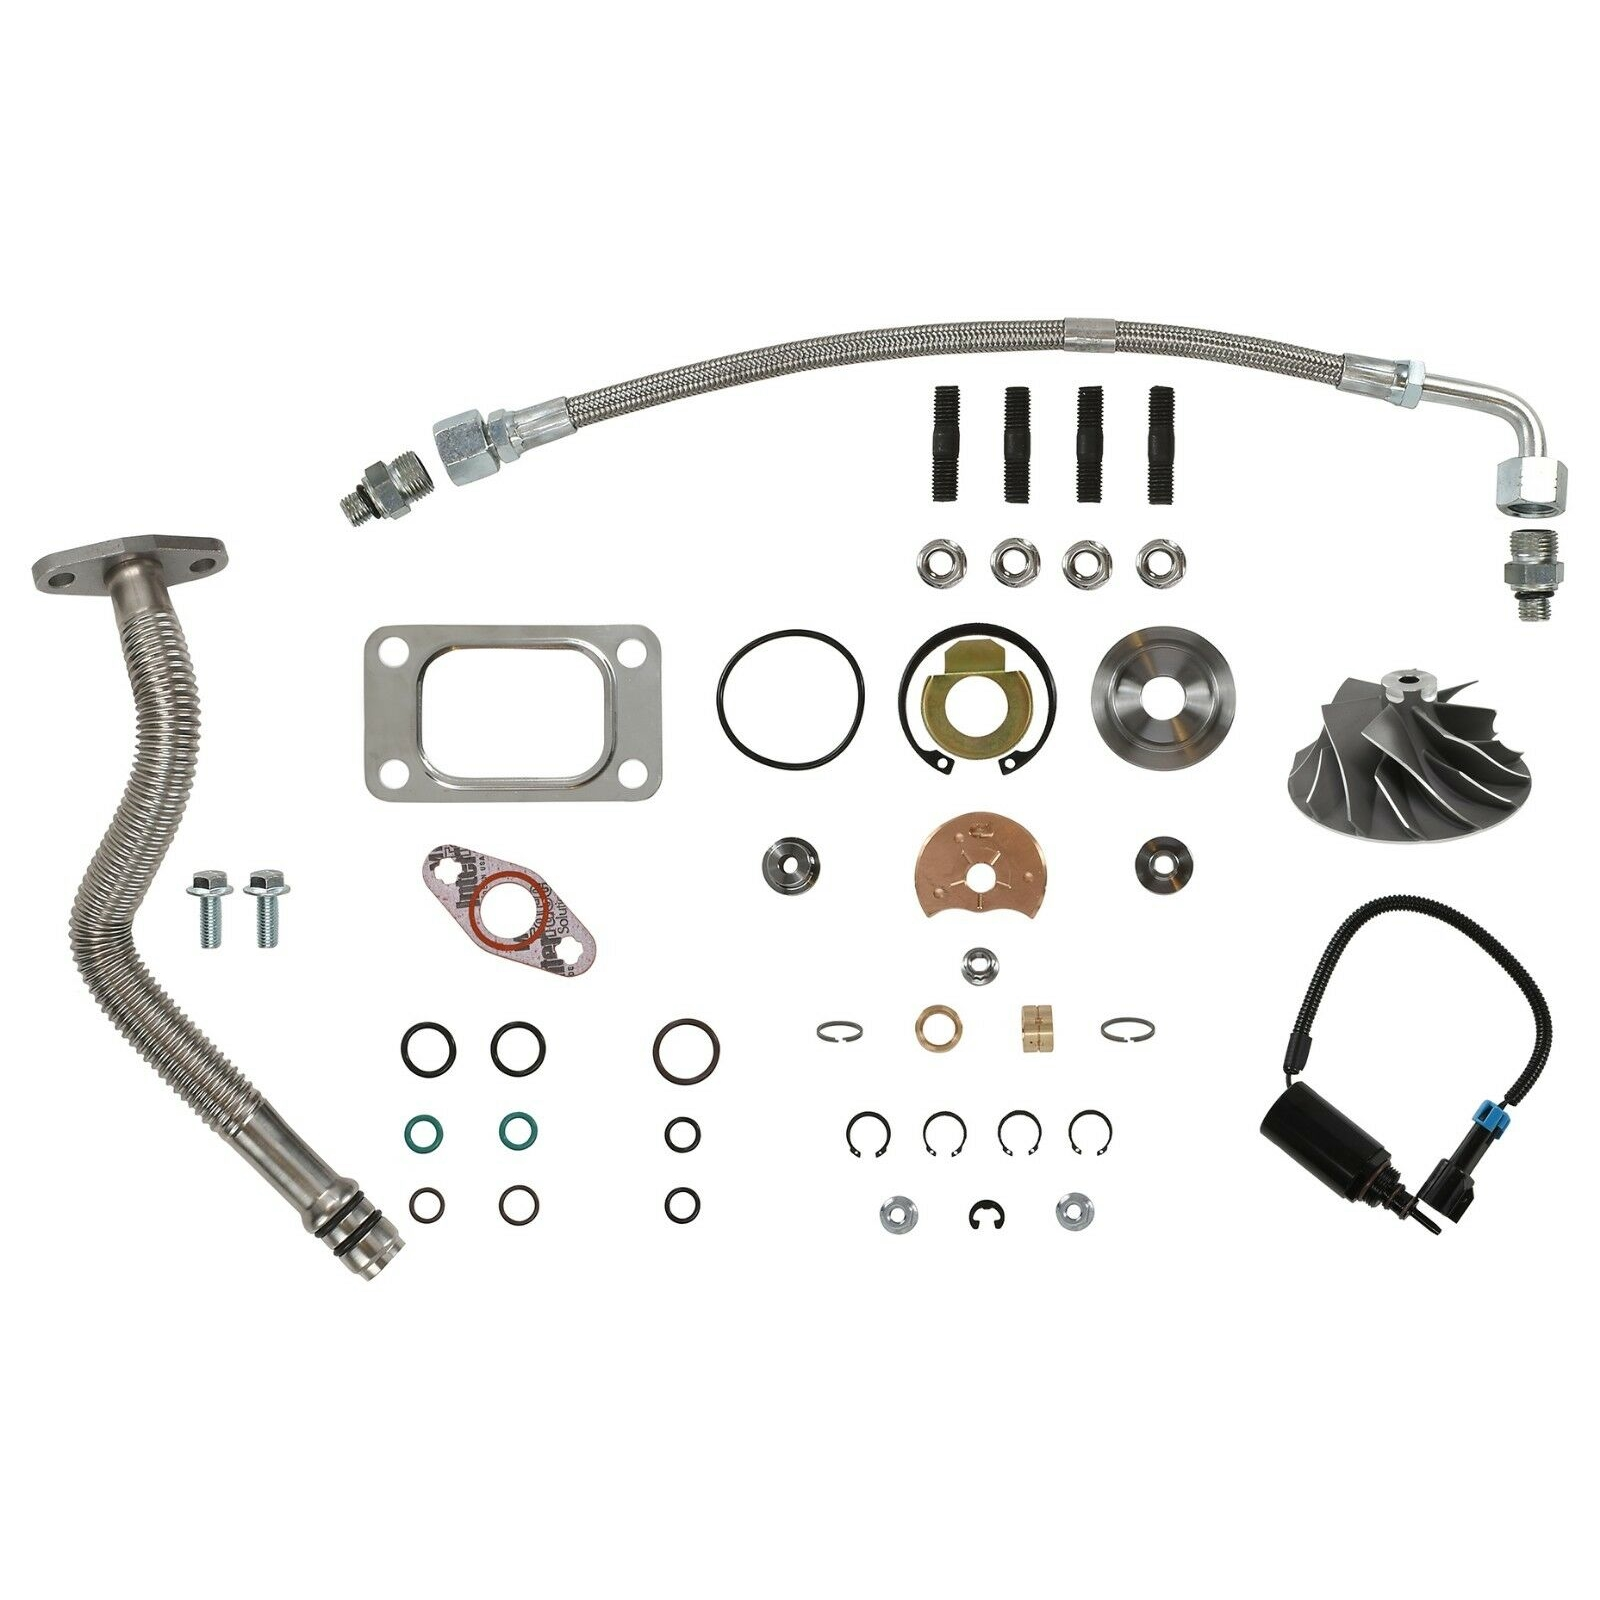 HE351CW Turbo Rebuild Kit Cast Wheel Oil Lines Wastegate Solenoid For 04.5-07 5.9L ISB Dodge Ram Cummins Diesel